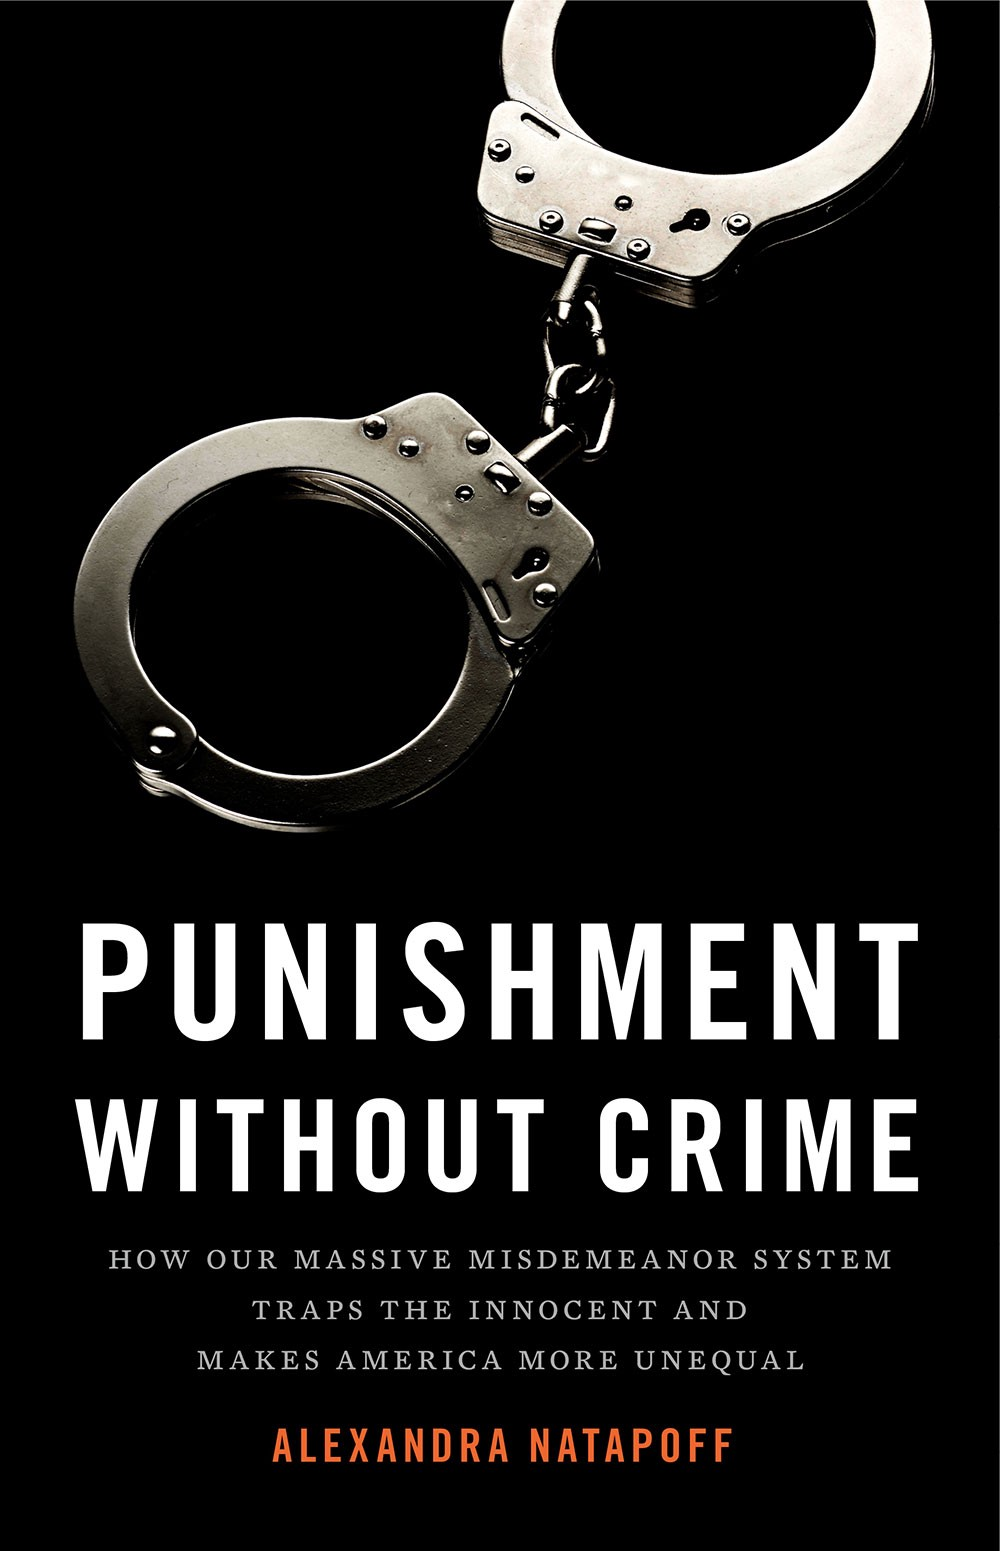 The — unbending — arc of justice for misdemeanor crime in